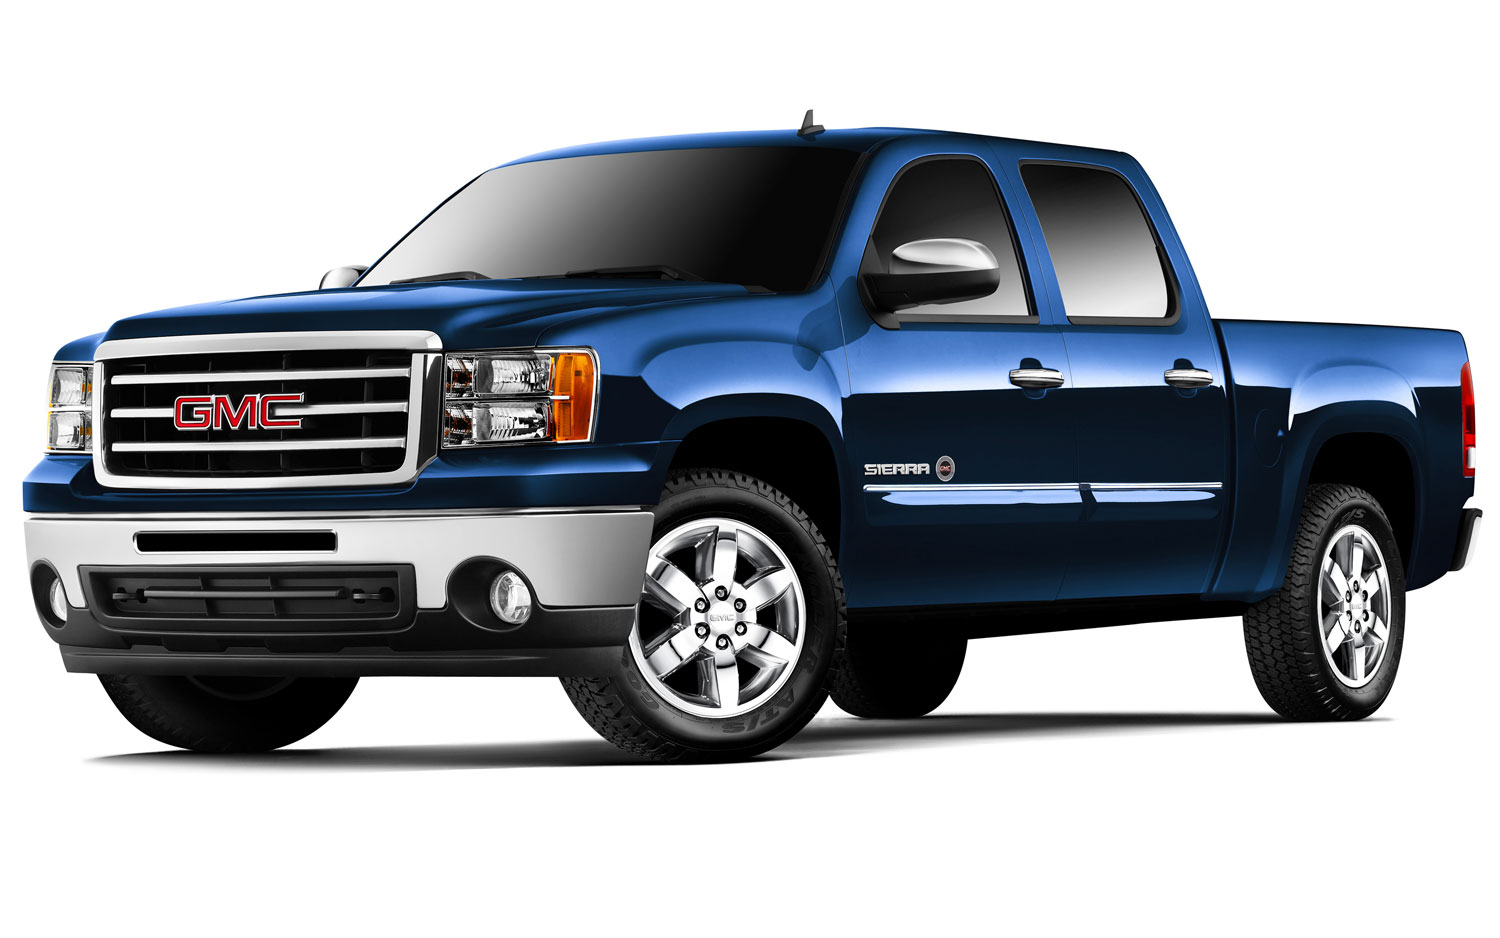 2013 gmc sierra engine specs truck port perry. Black Bedroom Furniture Sets. Home Design Ideas